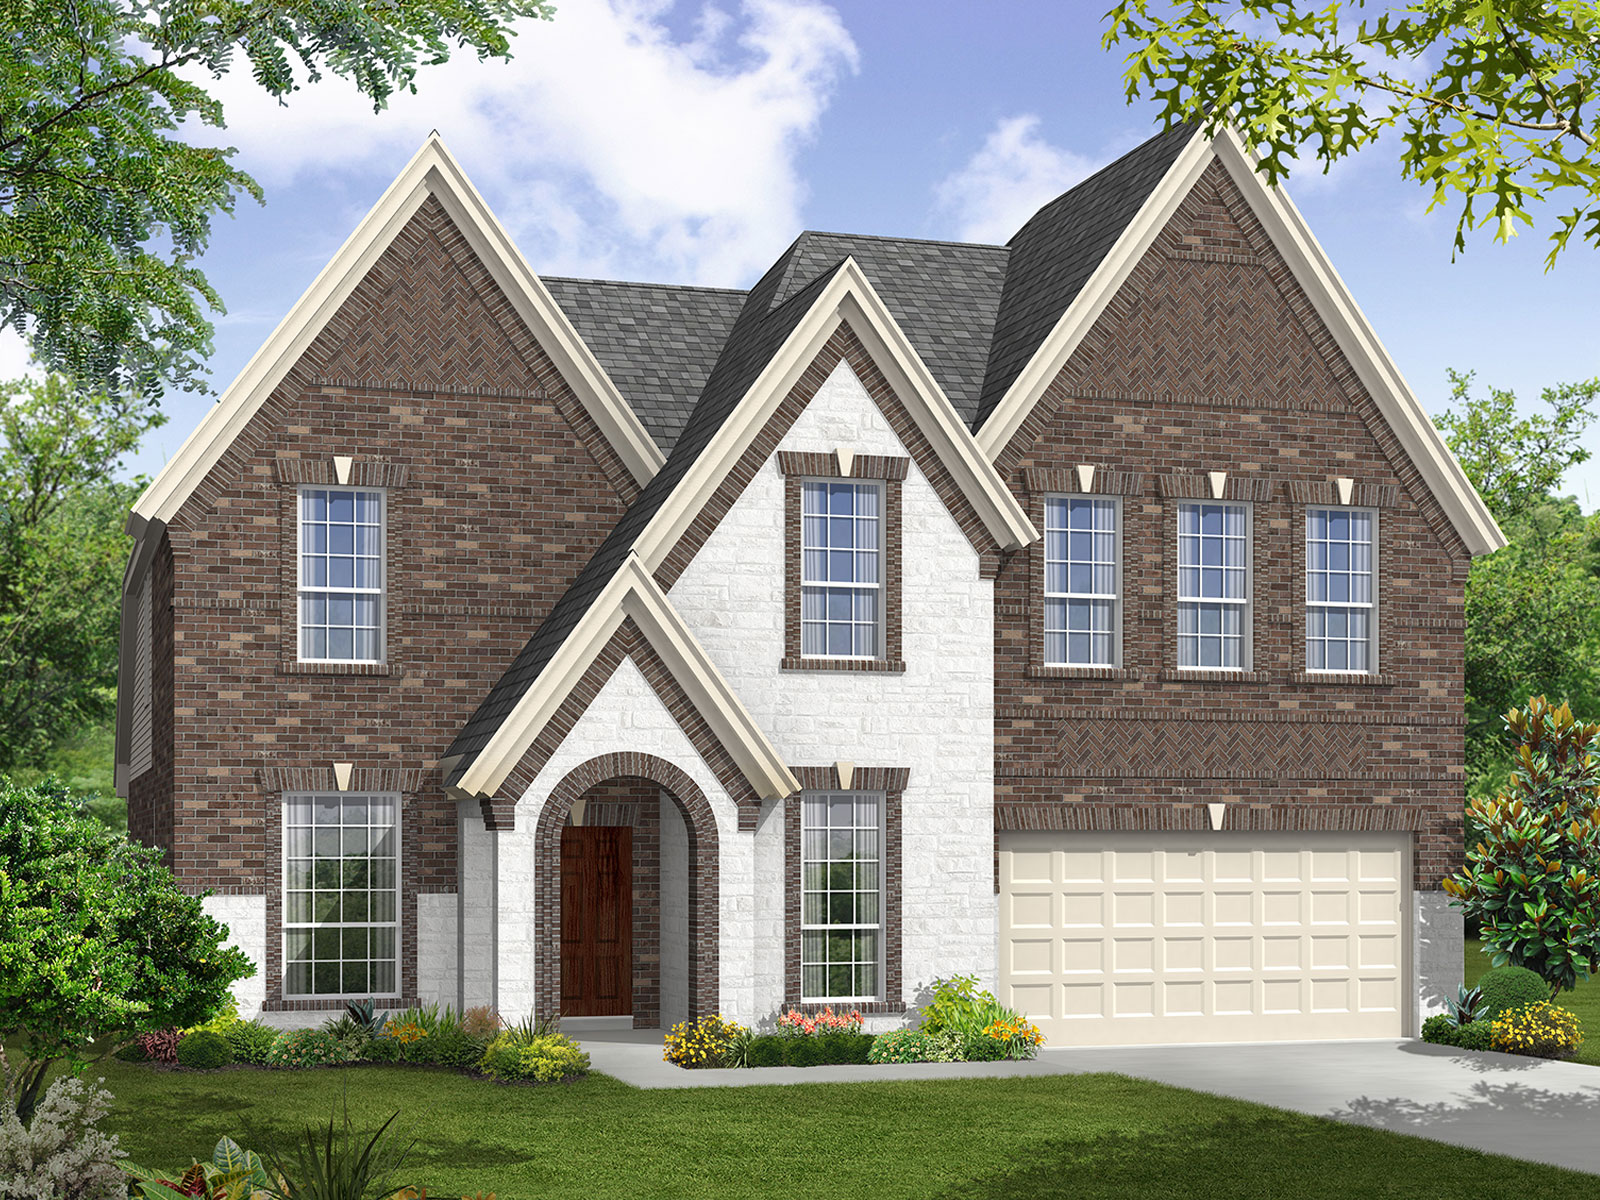 The windrose 5570 model 4br 3ba homes for sale in for Houston house elevation